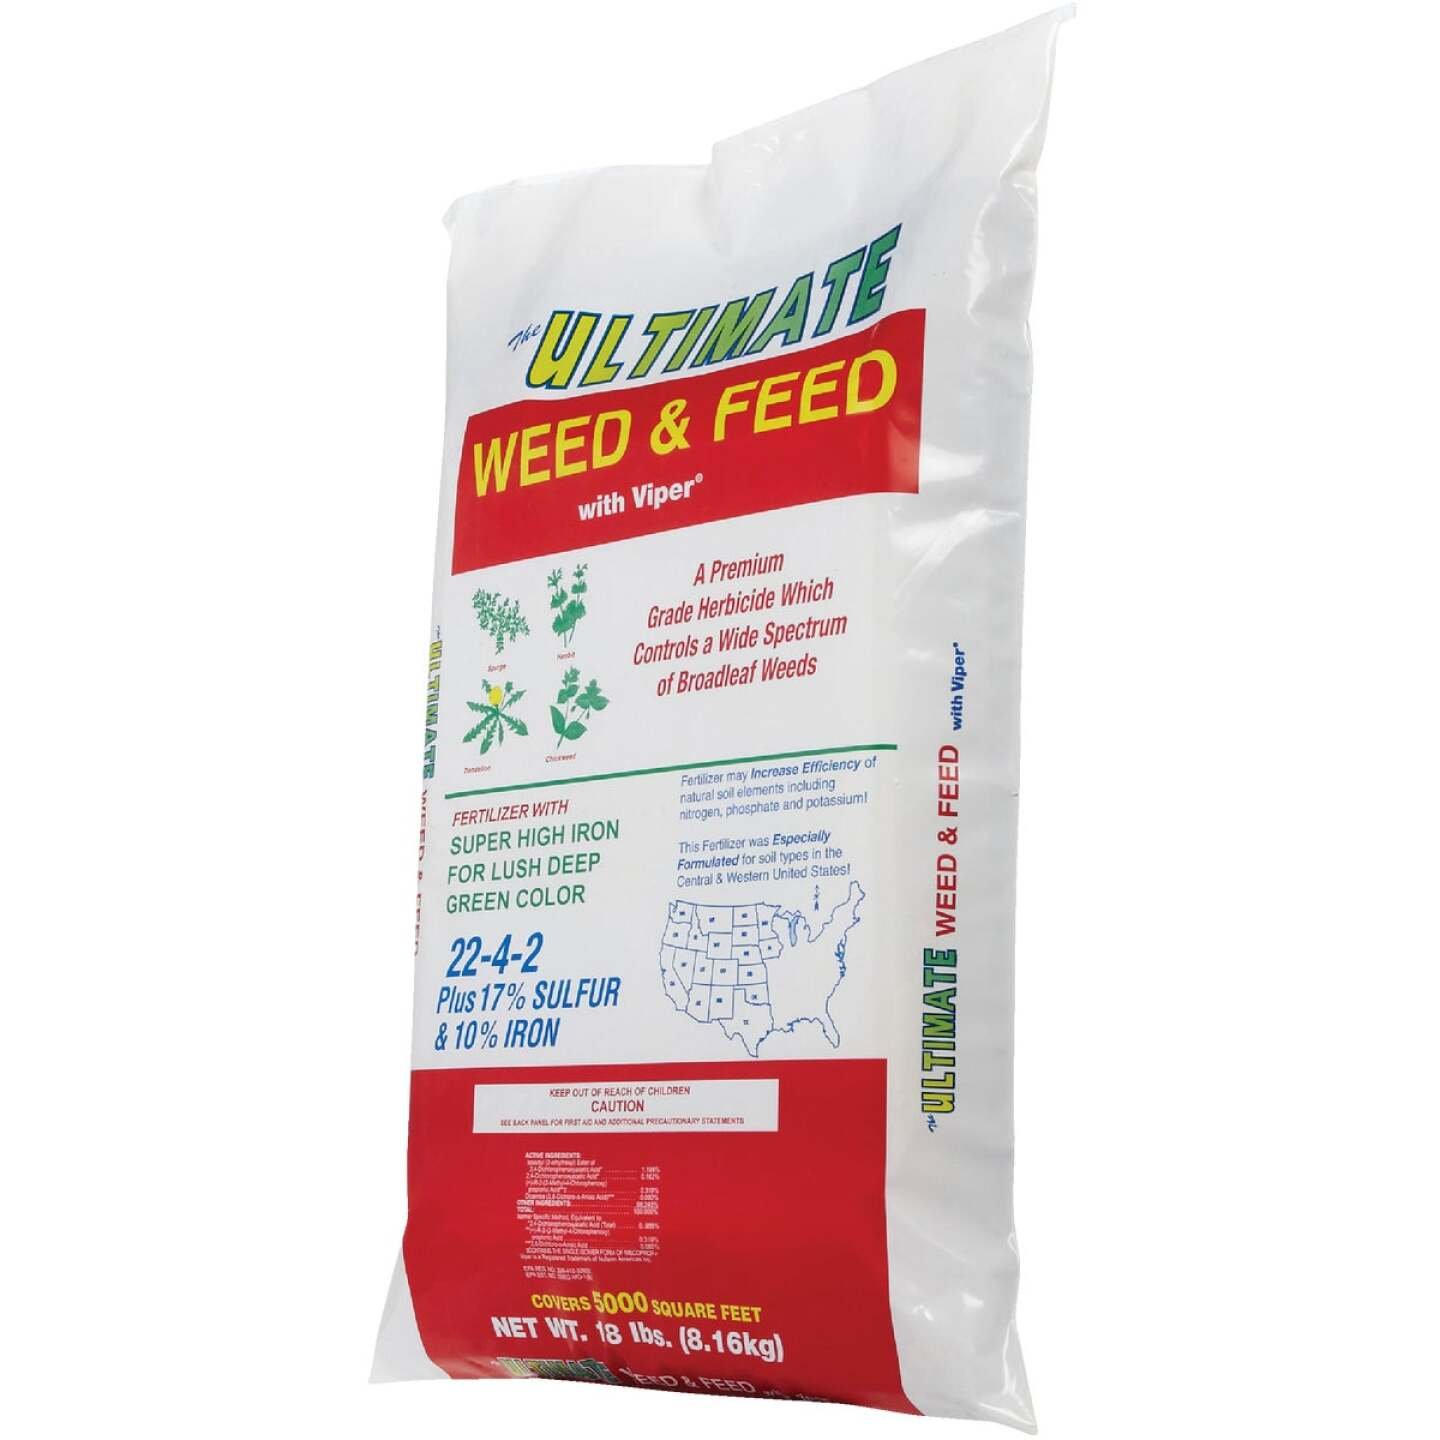 Ultimate Weed & Feed 18 Lb. 5000 Sq. Ft. 22-4-2 Lawn Fertilizer with Weed Killer Image 5